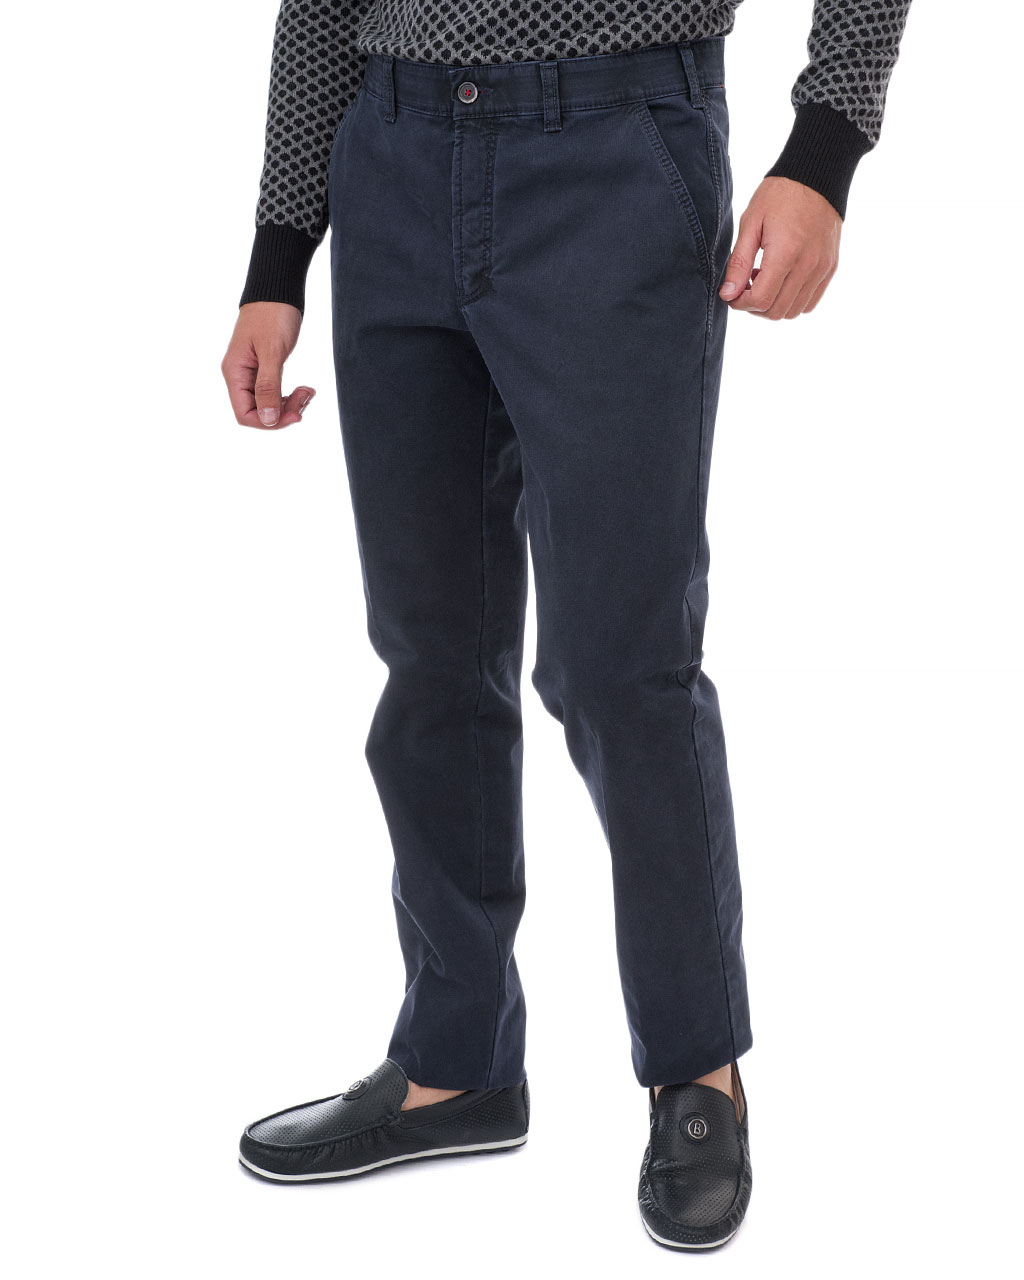 Men's trousers Garvey 6429-44/19-20 (3)